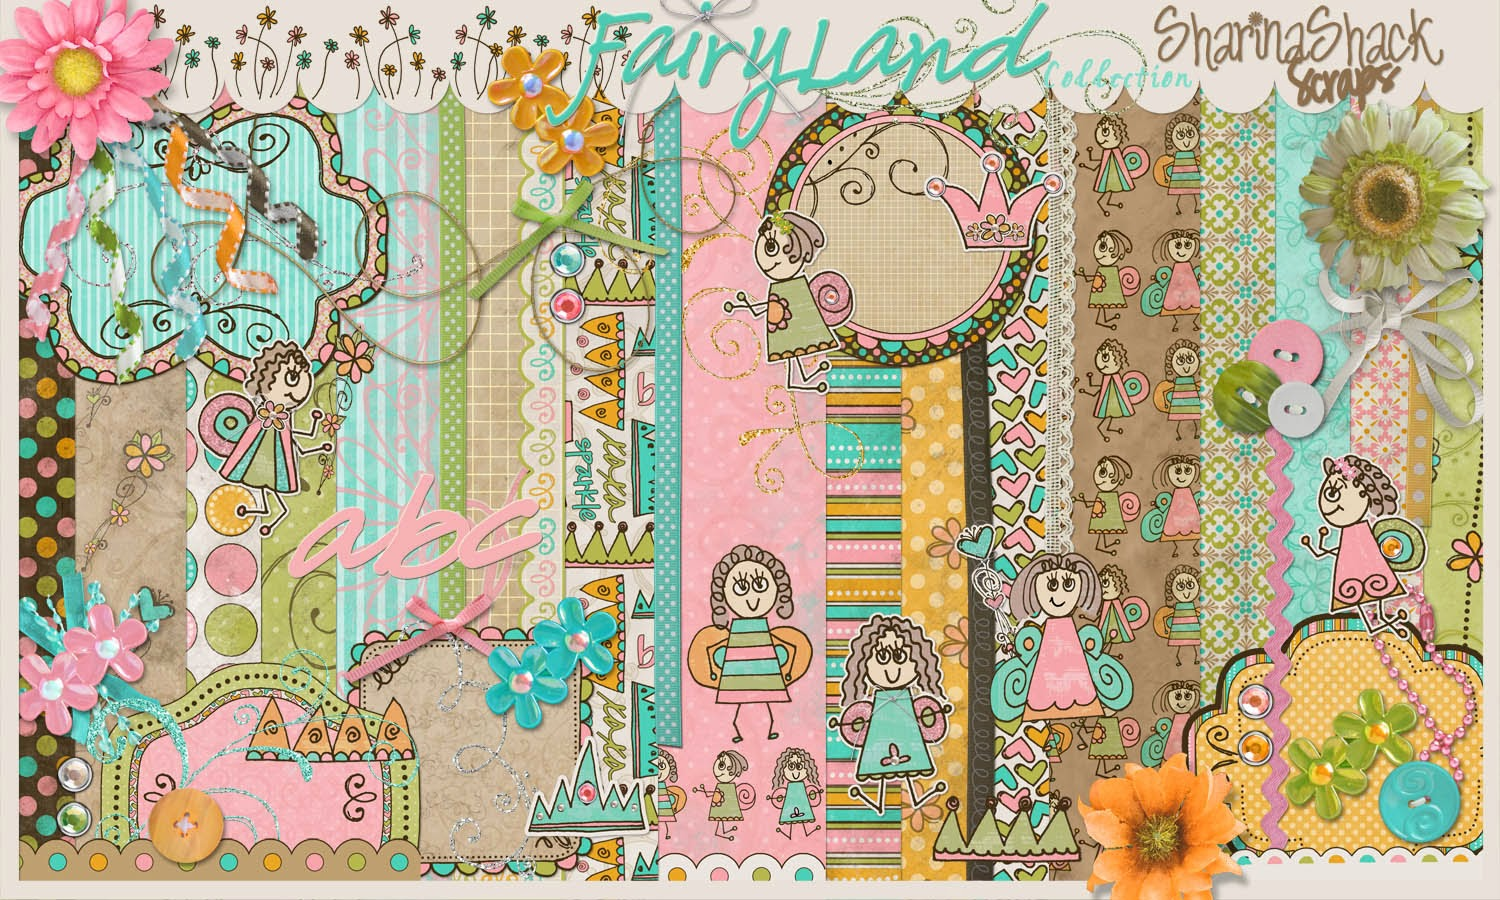 http://sharinashack.com/product/fairy-land/